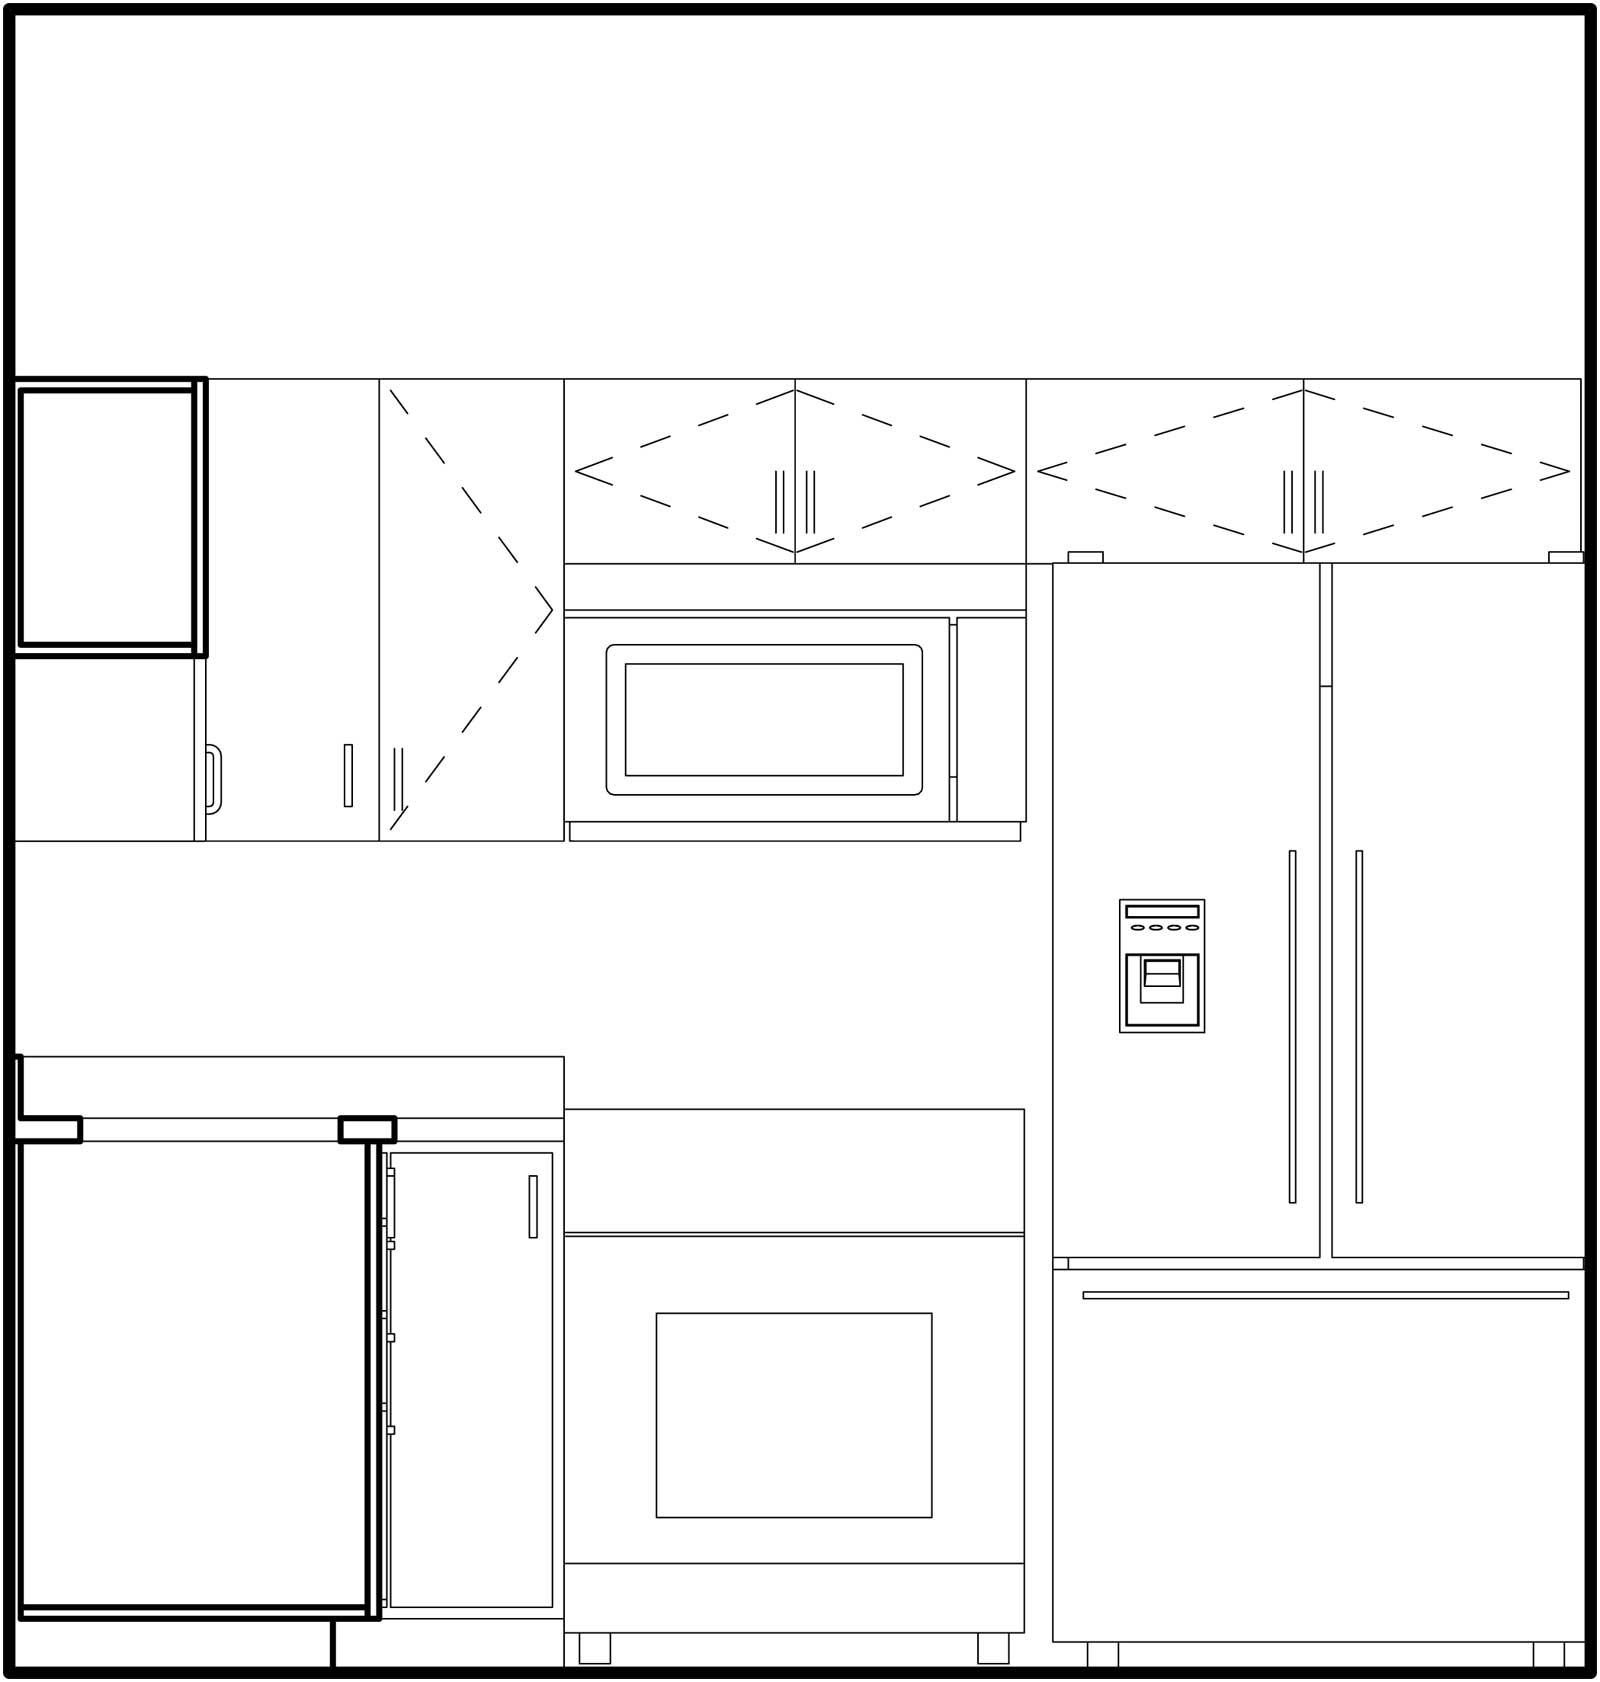 Elevation of kitchen A